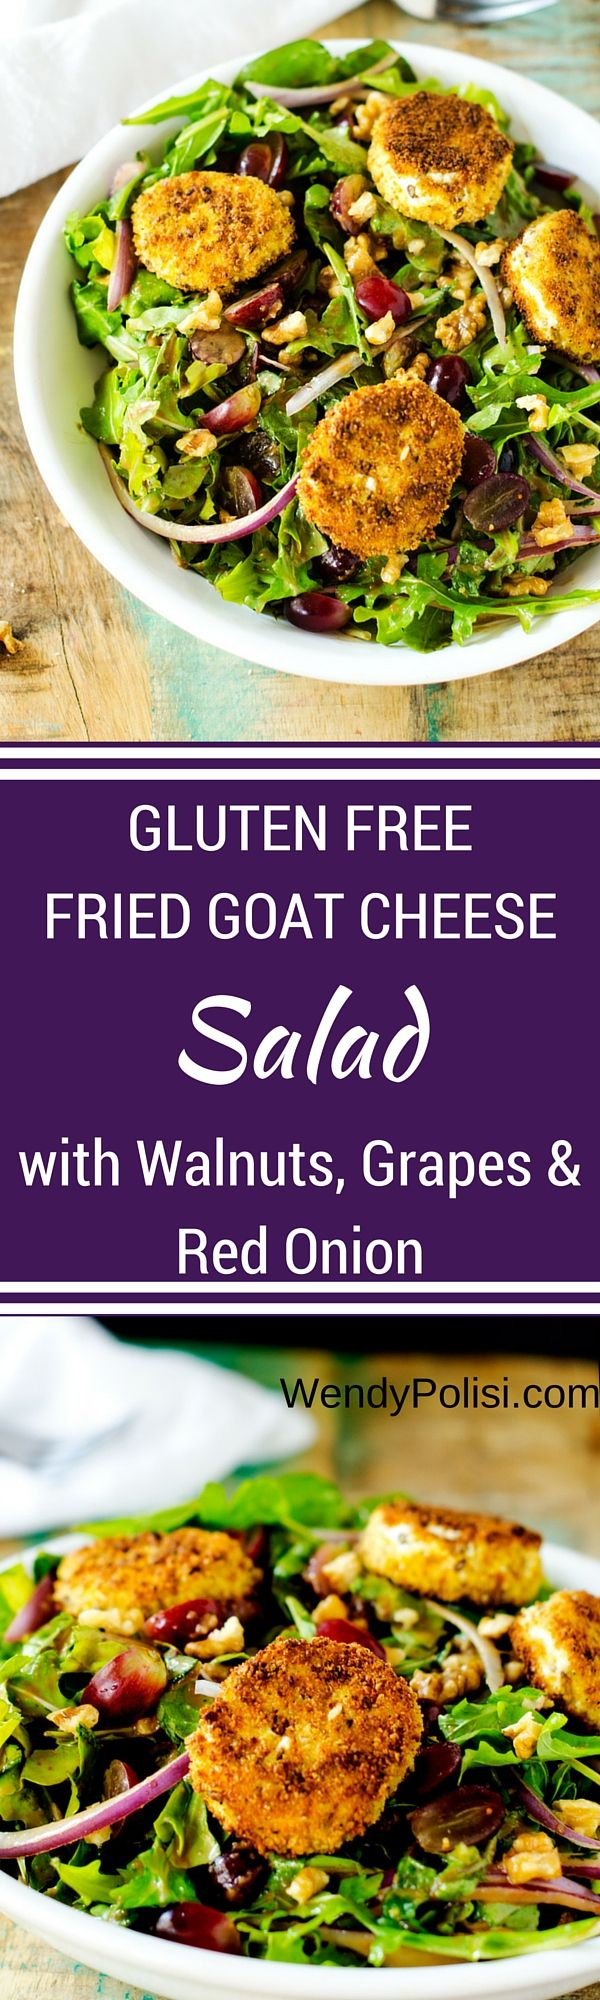 Gluten Free Fried Goat Cheese Salad